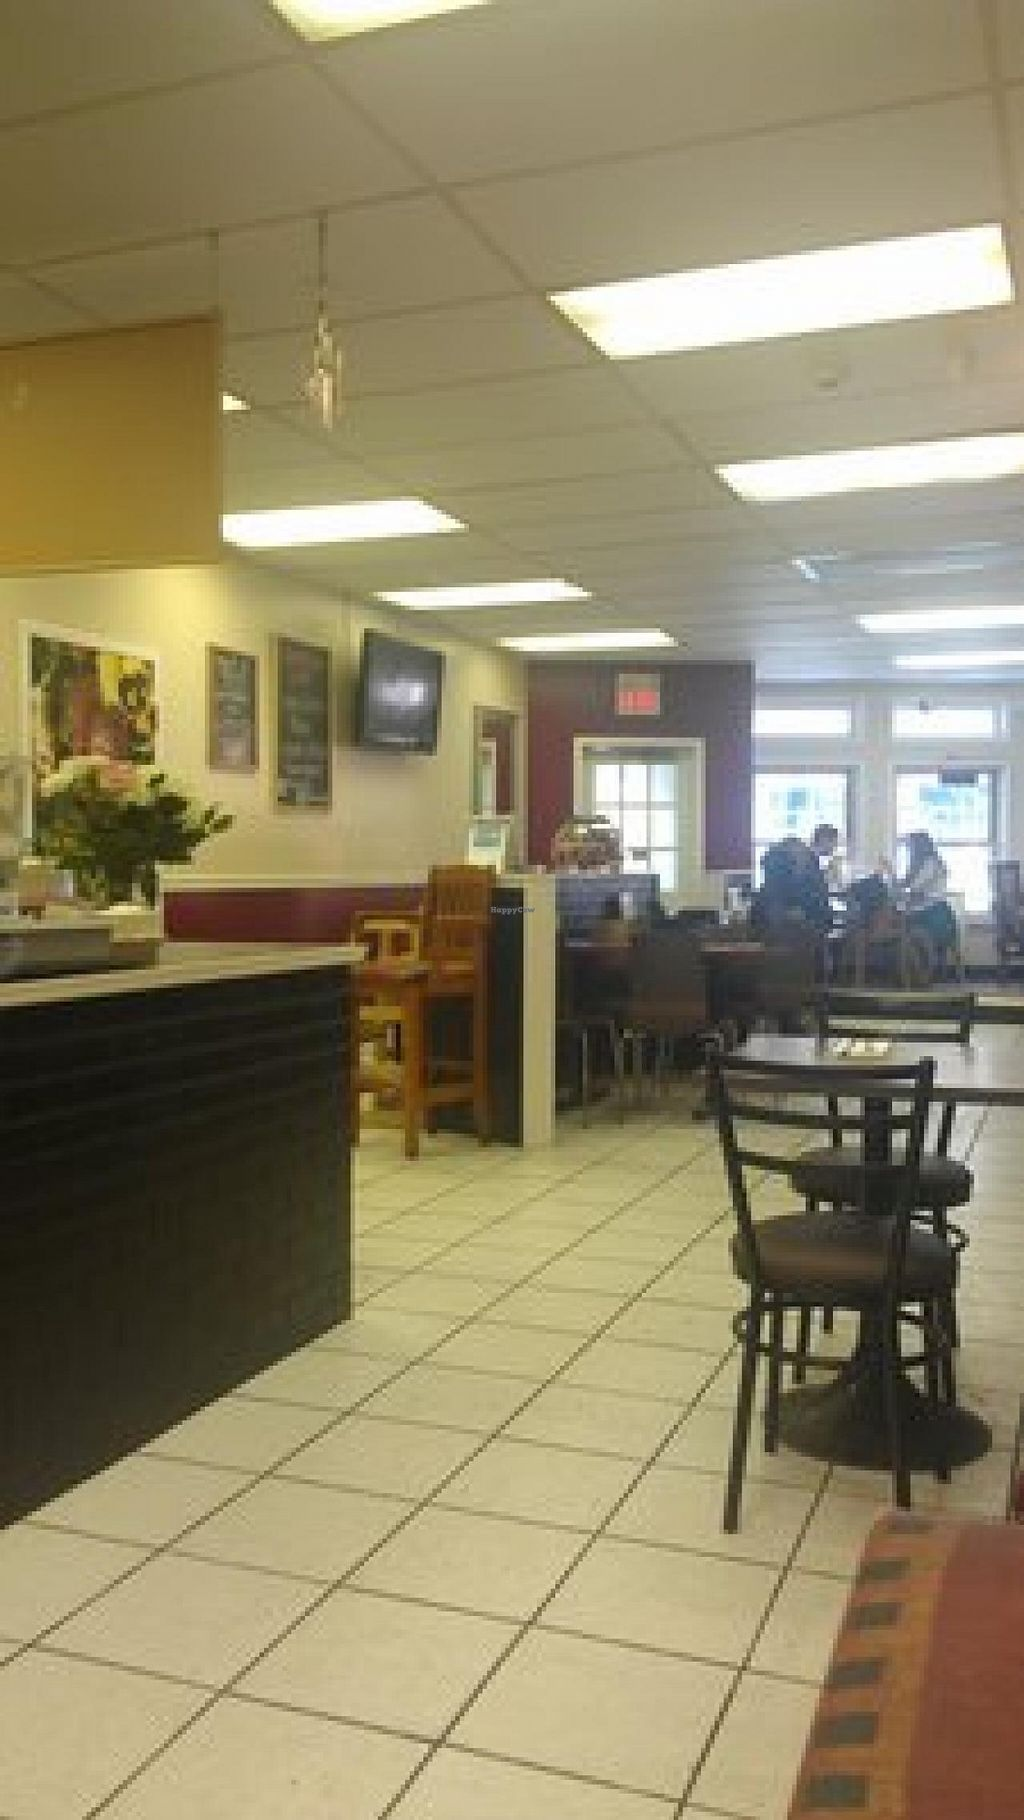 "Photo of Mary's Place Cafe II  by <a href=""/members/profile/QuothTheRaven"">QuothTheRaven</a> <br/>Inside <br/> March 2, 2014  - <a href='/contact/abuse/image/39875/65131'>Report</a>"